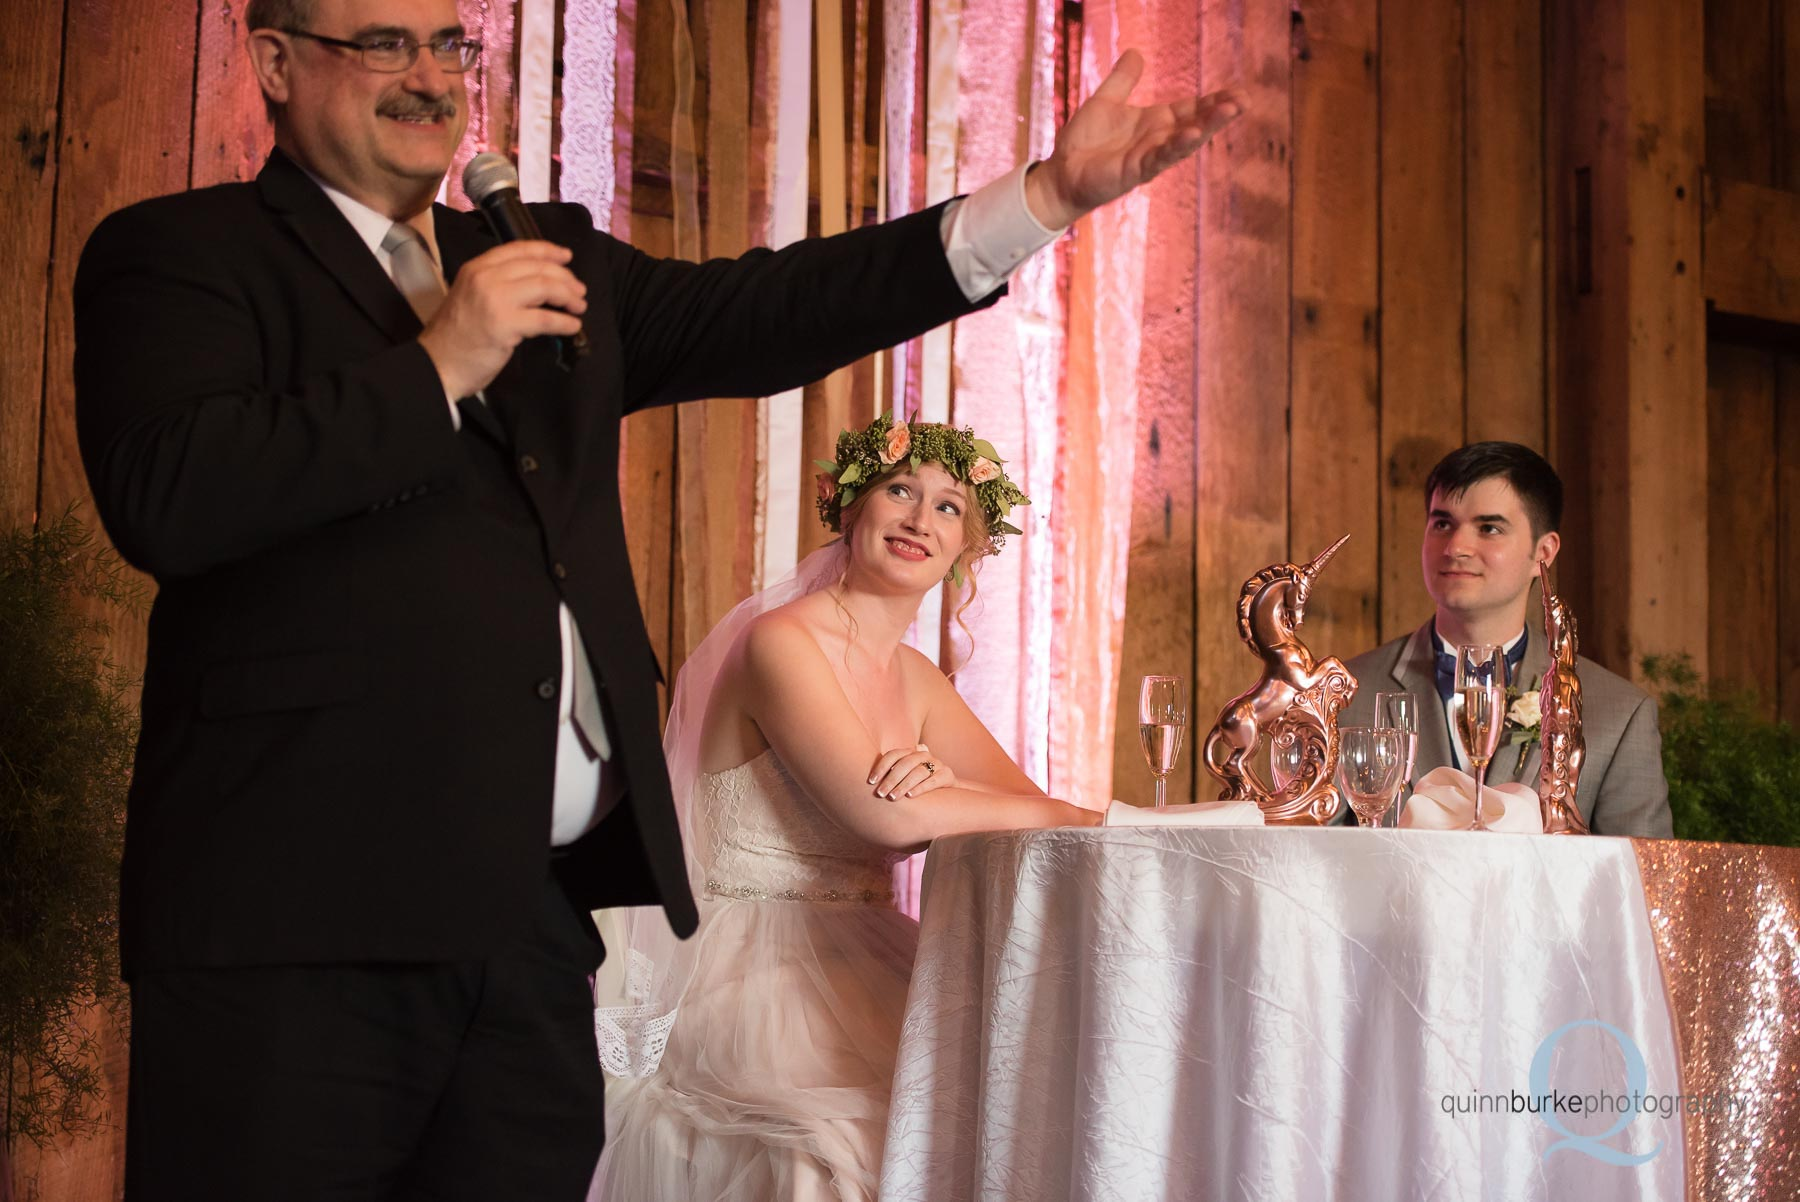 father of groom toast at wedding reception at Perryhill Farm barn oregon